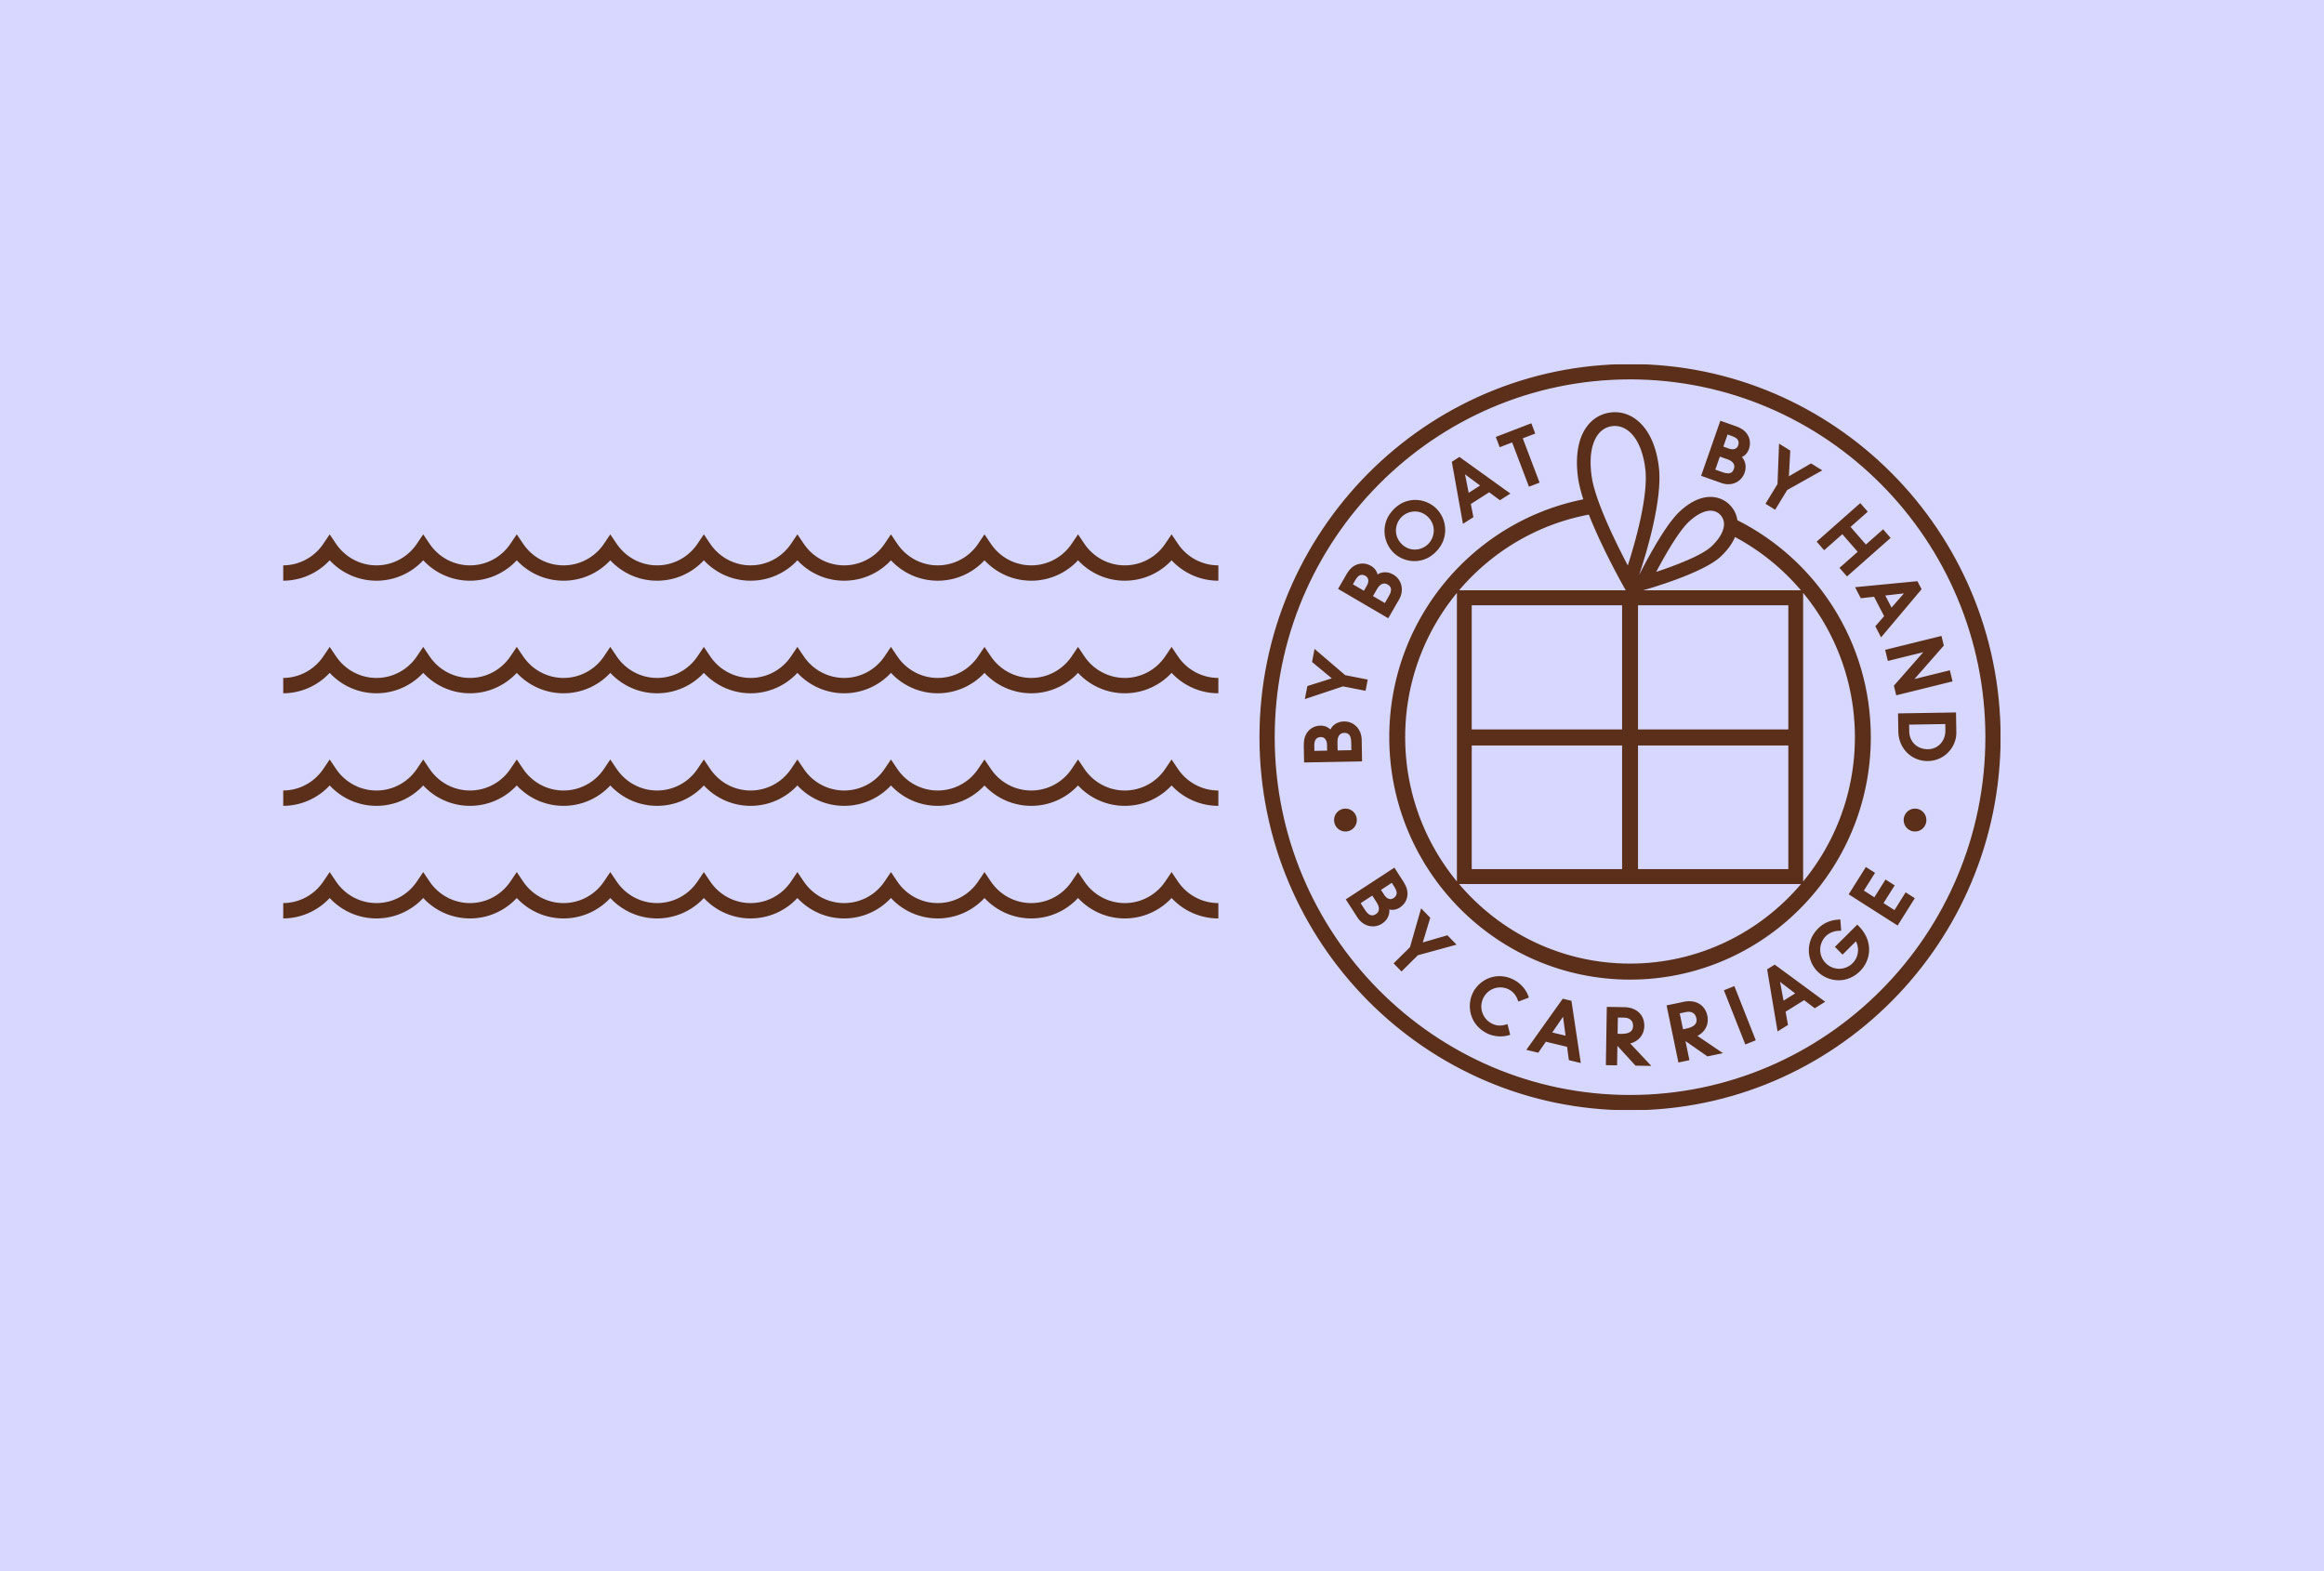 Part of the branding for Caragh Chocolates.